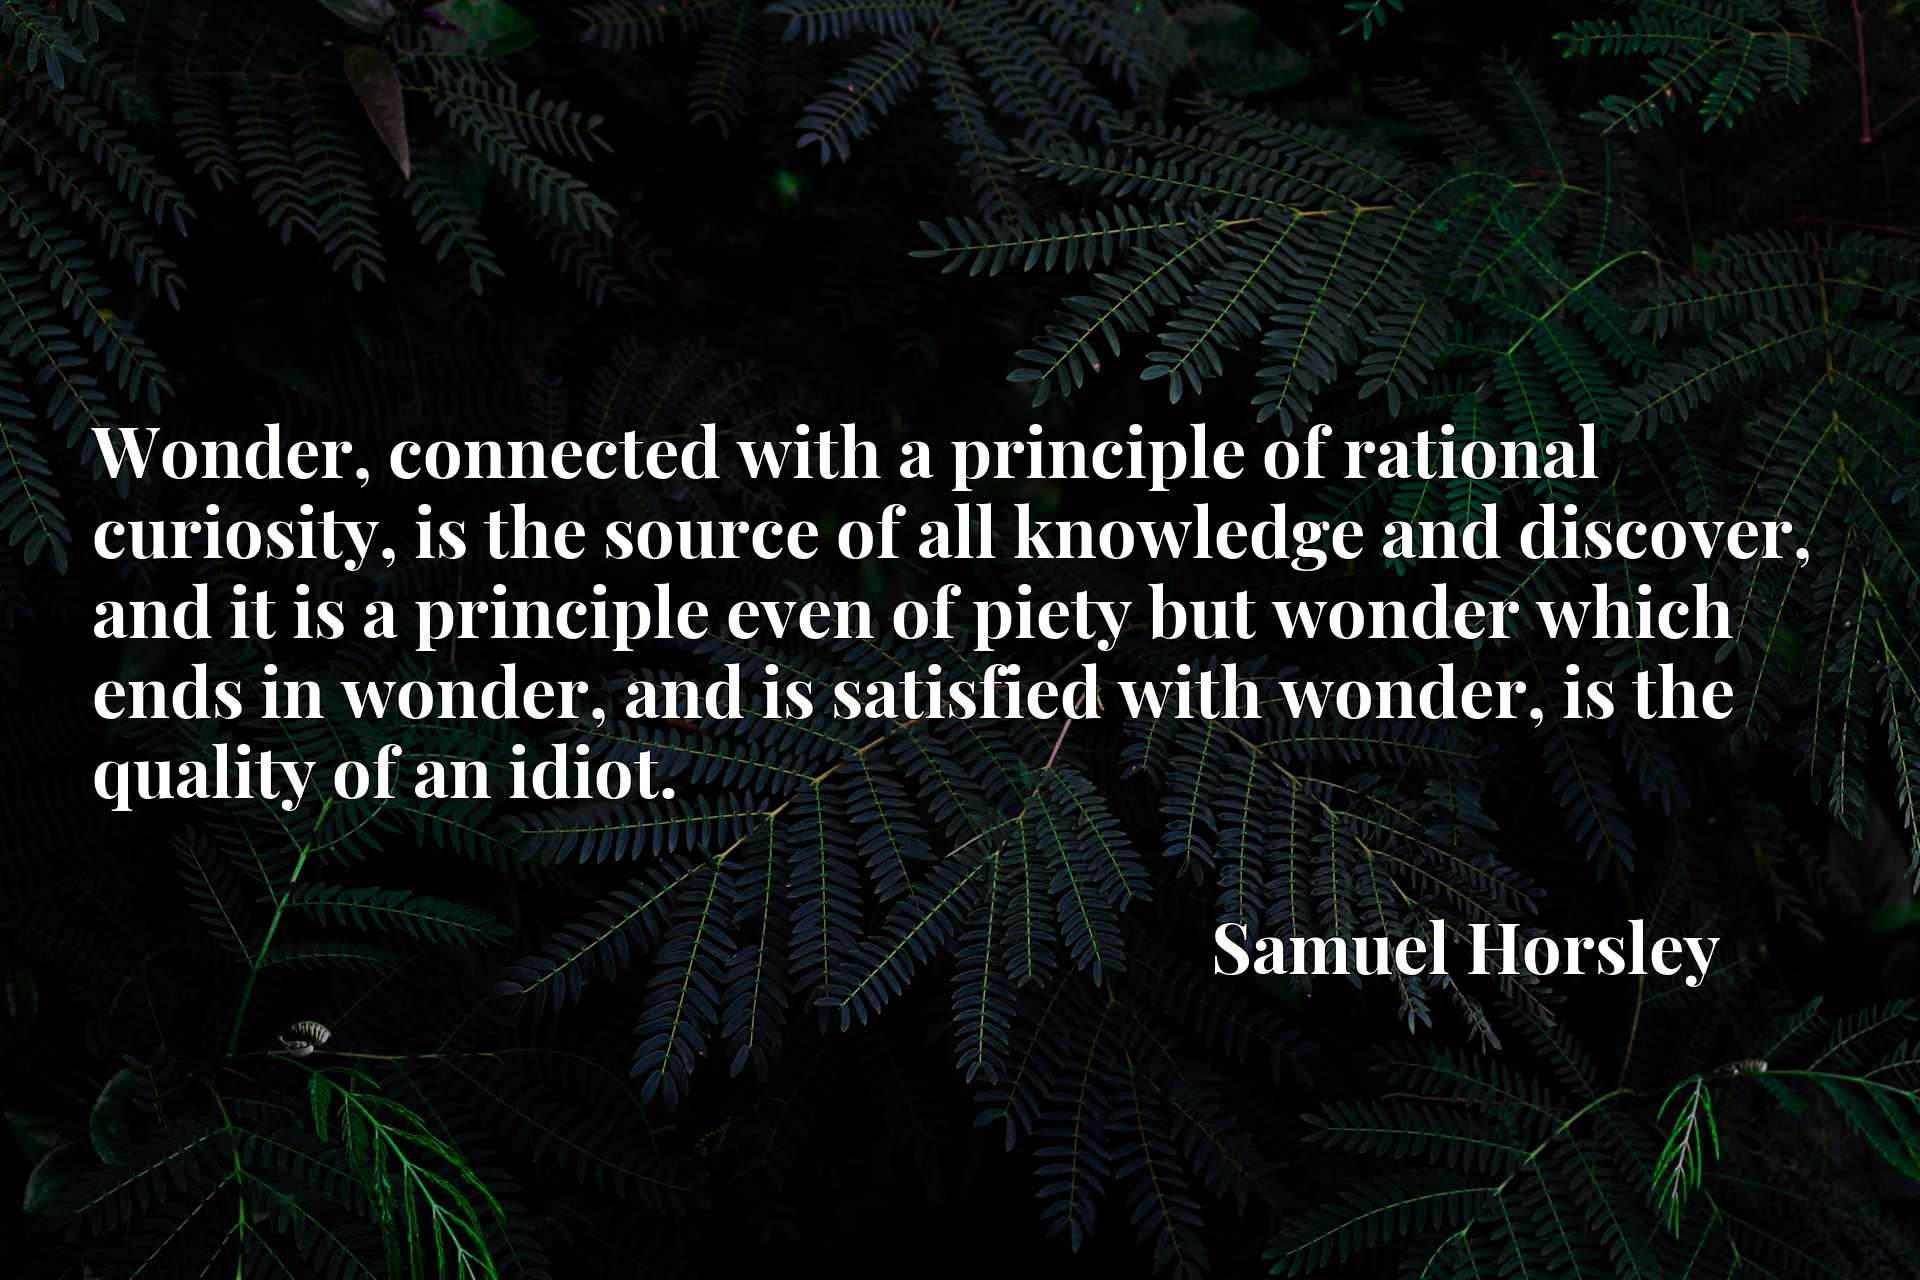 Wonder, connected with a principle of rational curiosity, is the source of all knowledge and discover, and it is a principle even of piety but wonder which ends in wonder, and is satisfied with wonder, is the quality of an idiot.